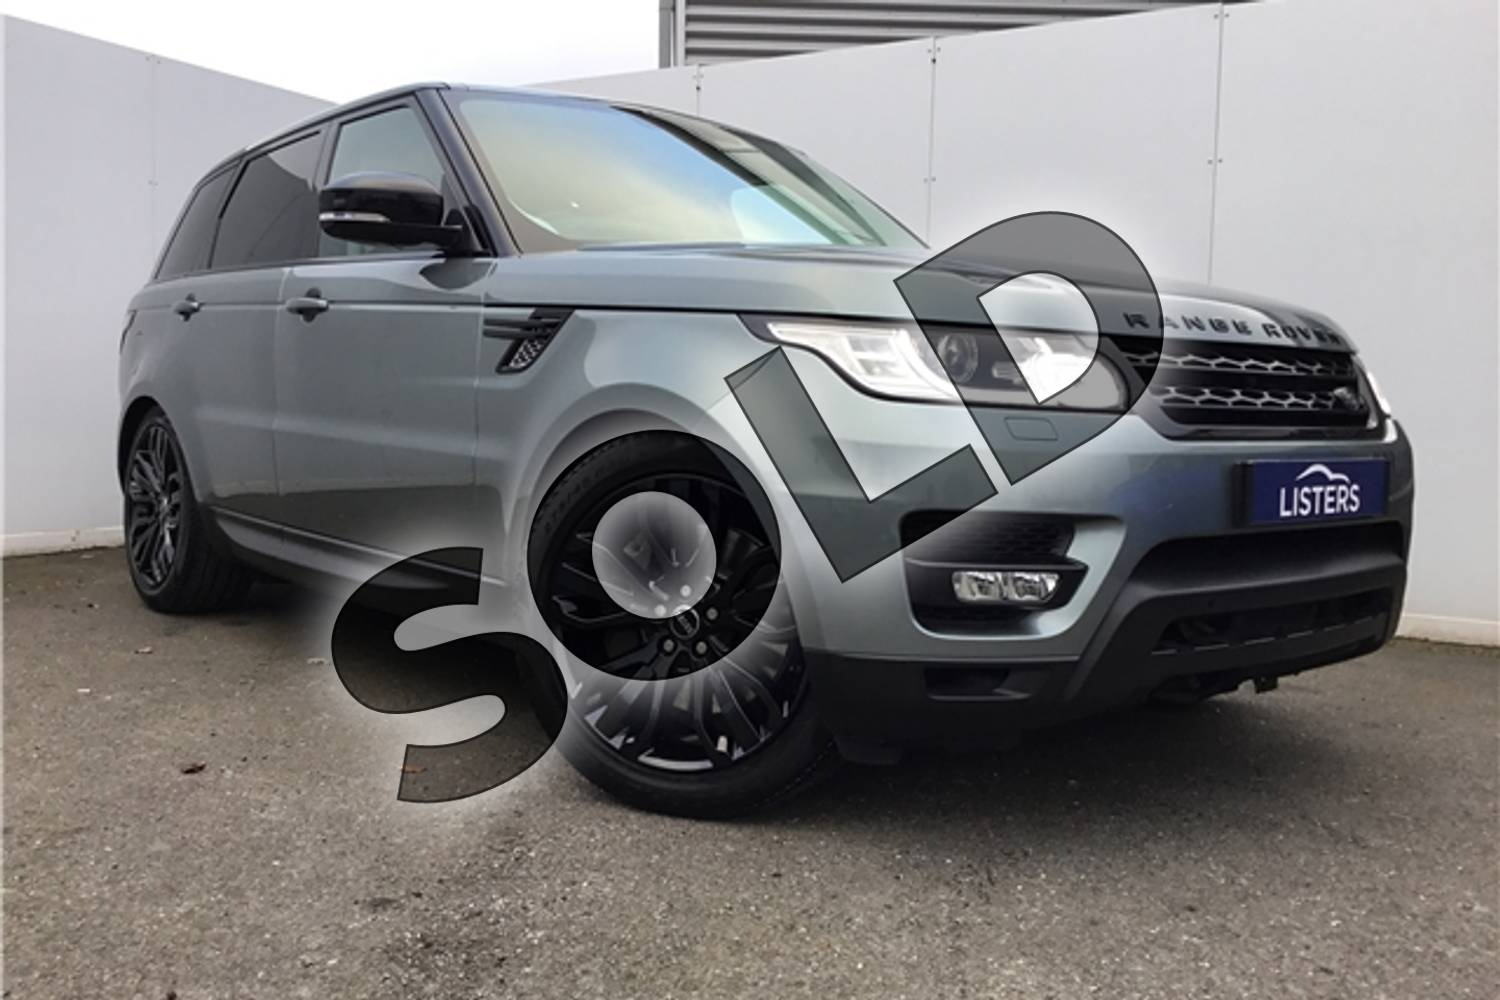 2015 Range Rover Sport Diesel Estate 3.0 SDV6 (306) HSE Dynamic 5dr Auto (7 seat) in Metallic - Scotia grey at Listers U Solihull